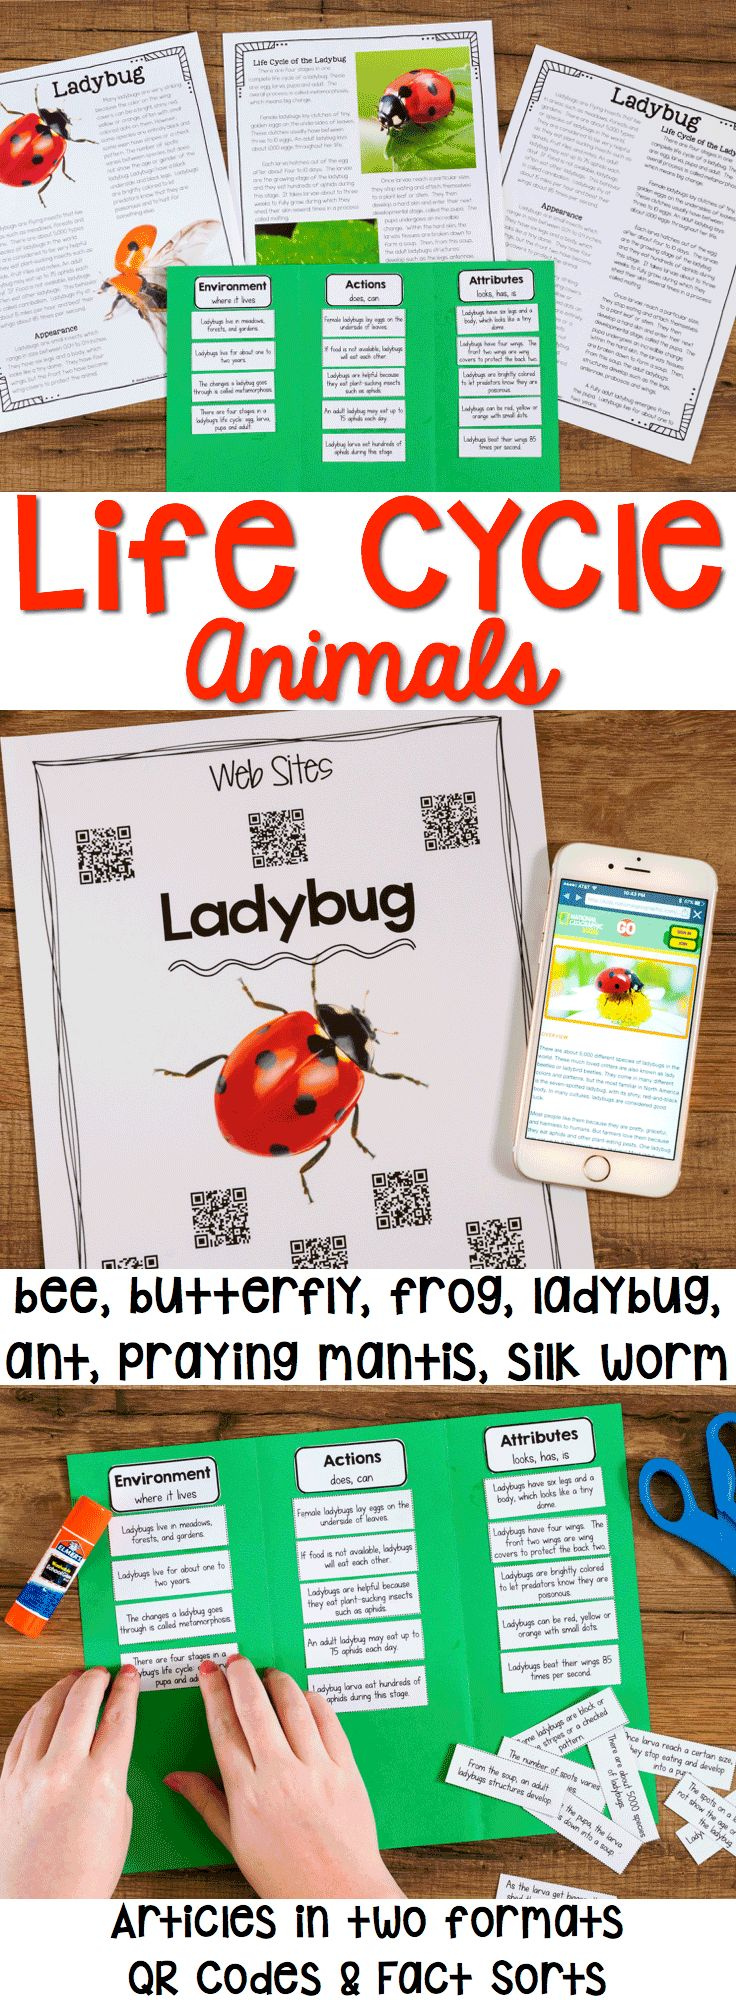 Life Cycle Articles, QR Codes and Fact sort help students dive into information about animals that go through metamorphosis. Includes resources for ants, bees, butterflies, frogs, ladybugs, praying mantis, and silk worms.